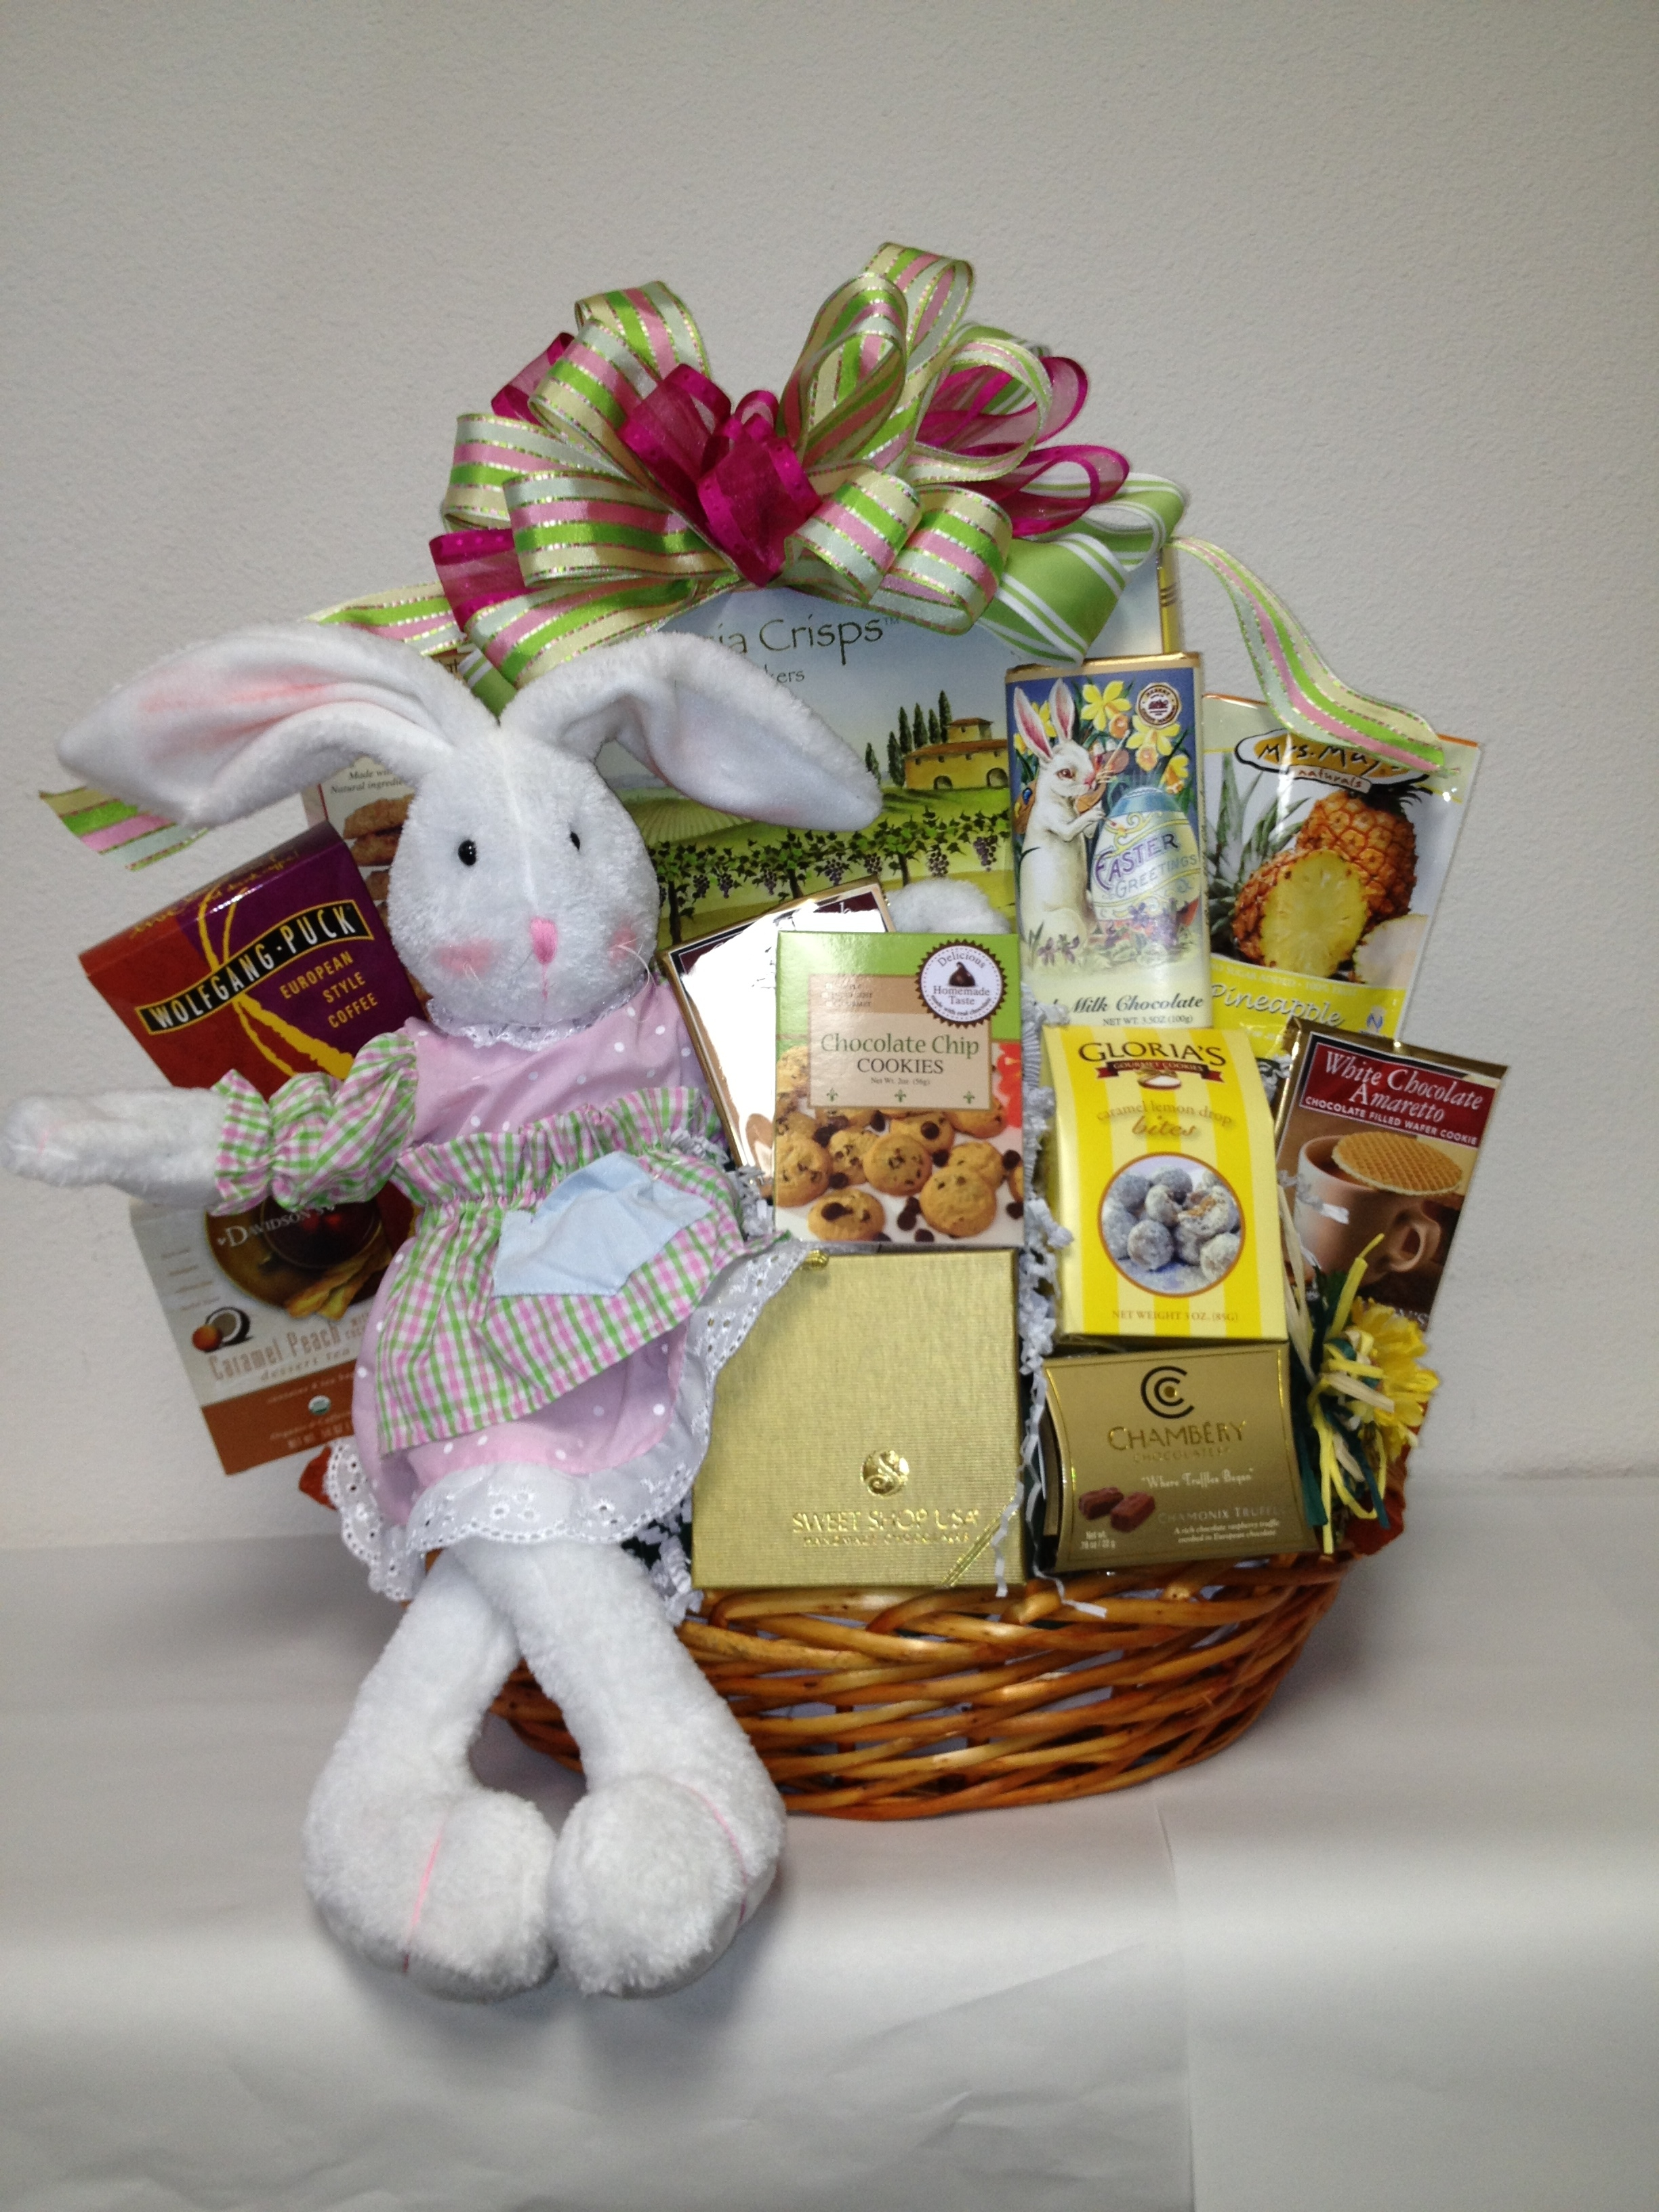 The Gourmet Easter Gift Basket San Diego Gift Basket